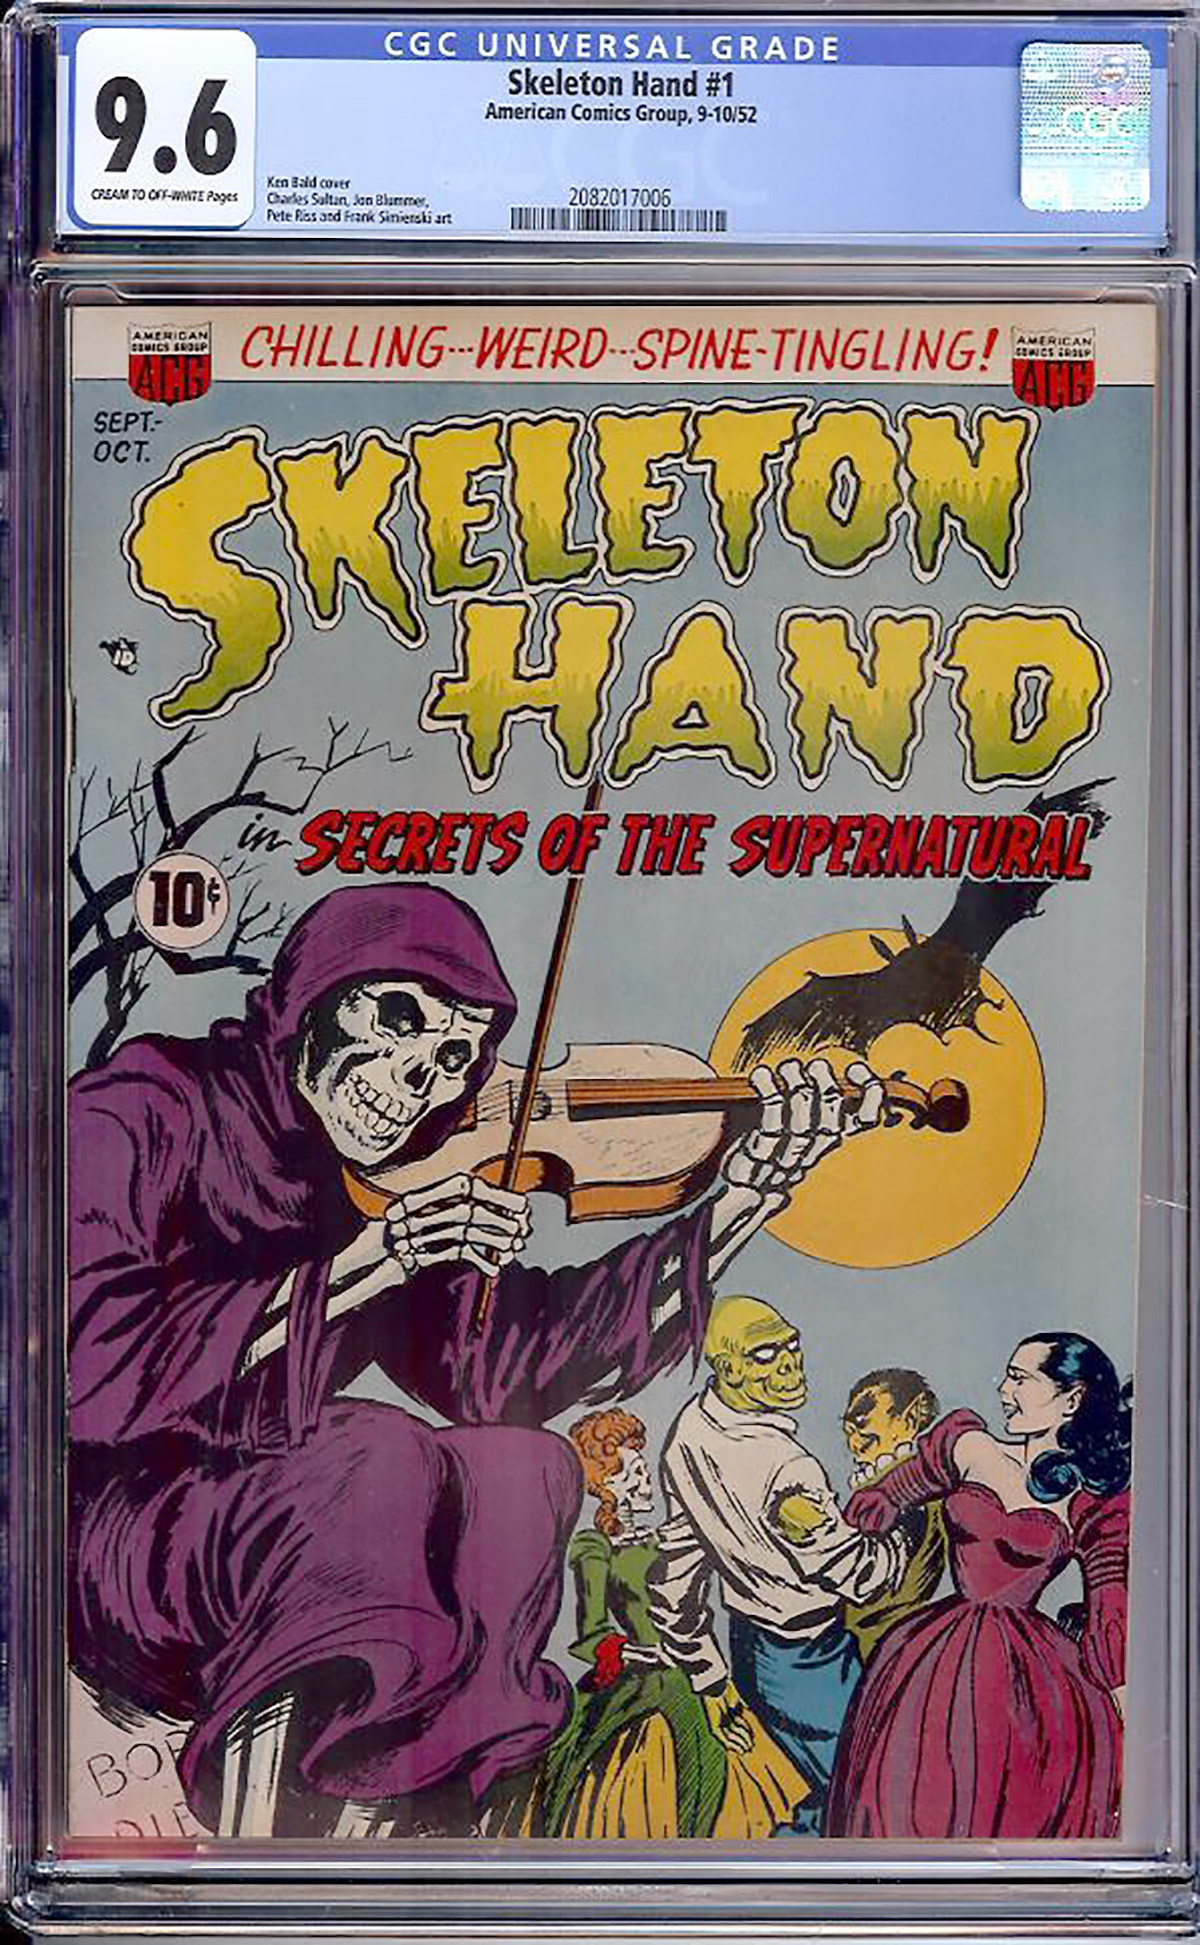 Skeleton Hand #1 CGC 9.6 cr/ow